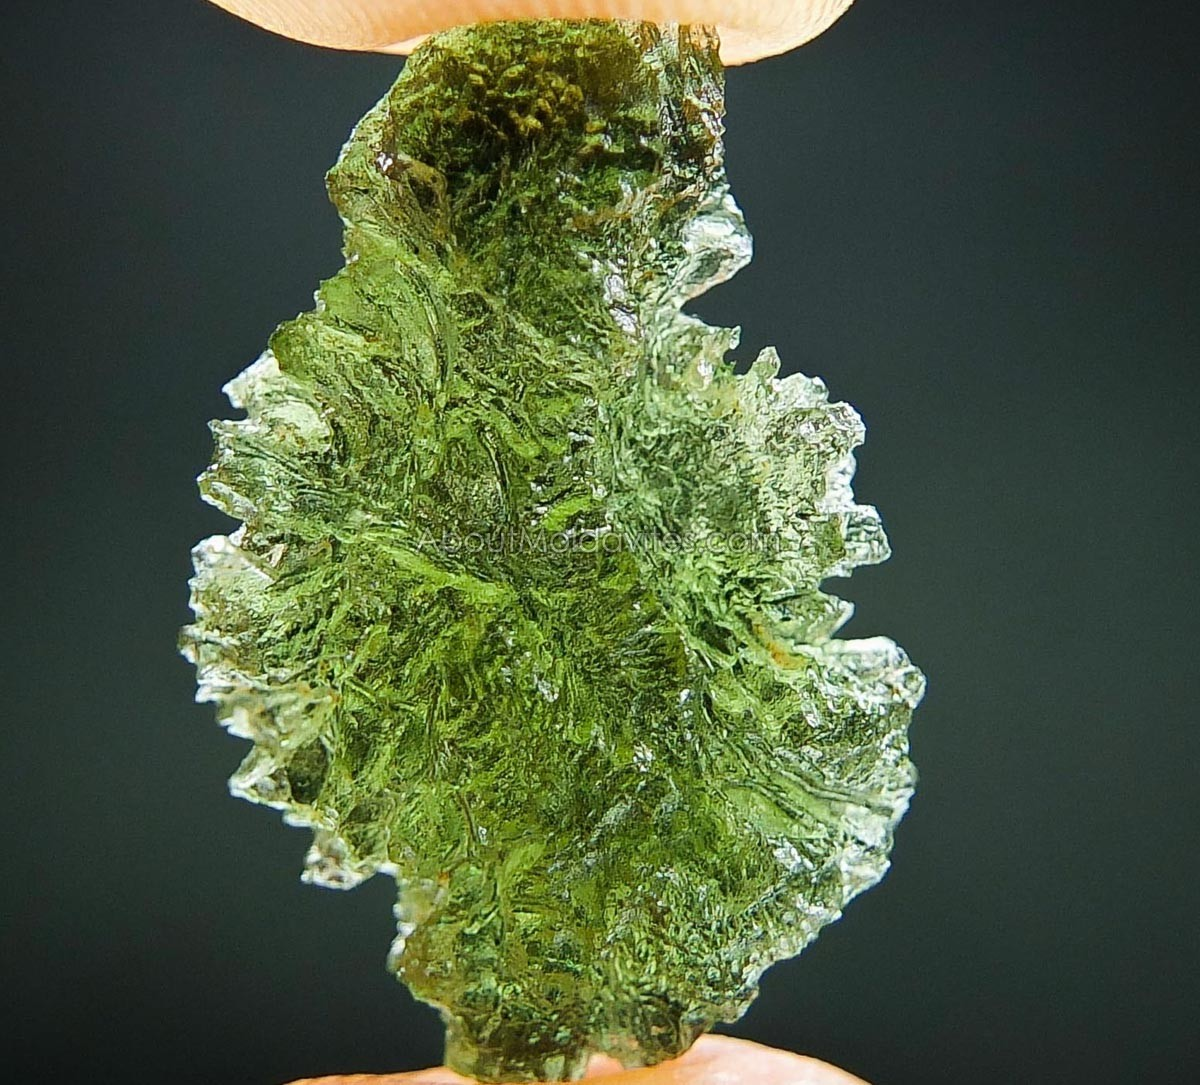 Moldavite - like hedgehog - from Nesmen